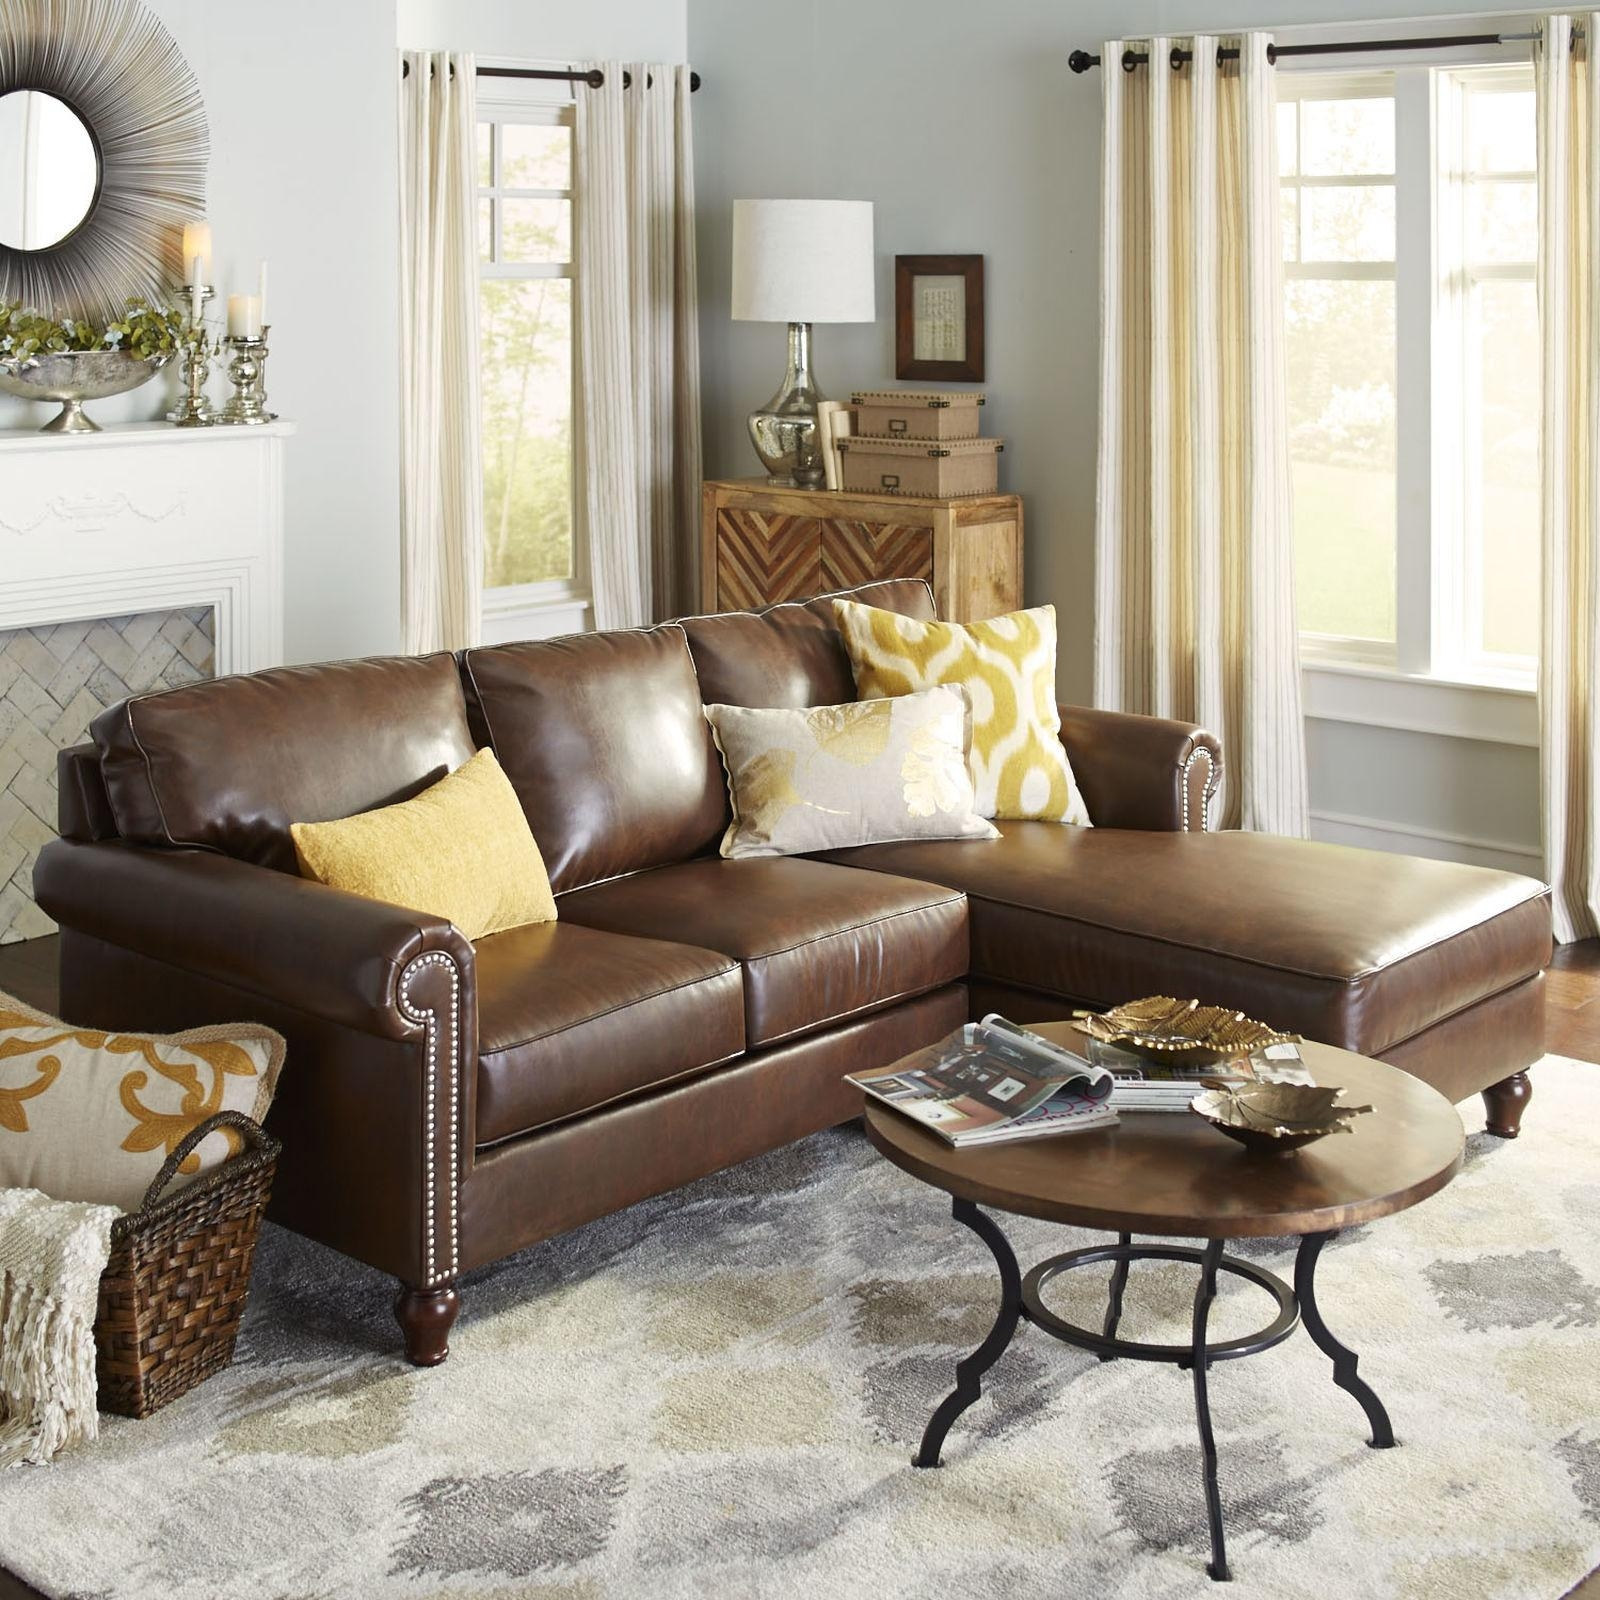 2019 Latest Pier 1 Sofas Sofa Ideas